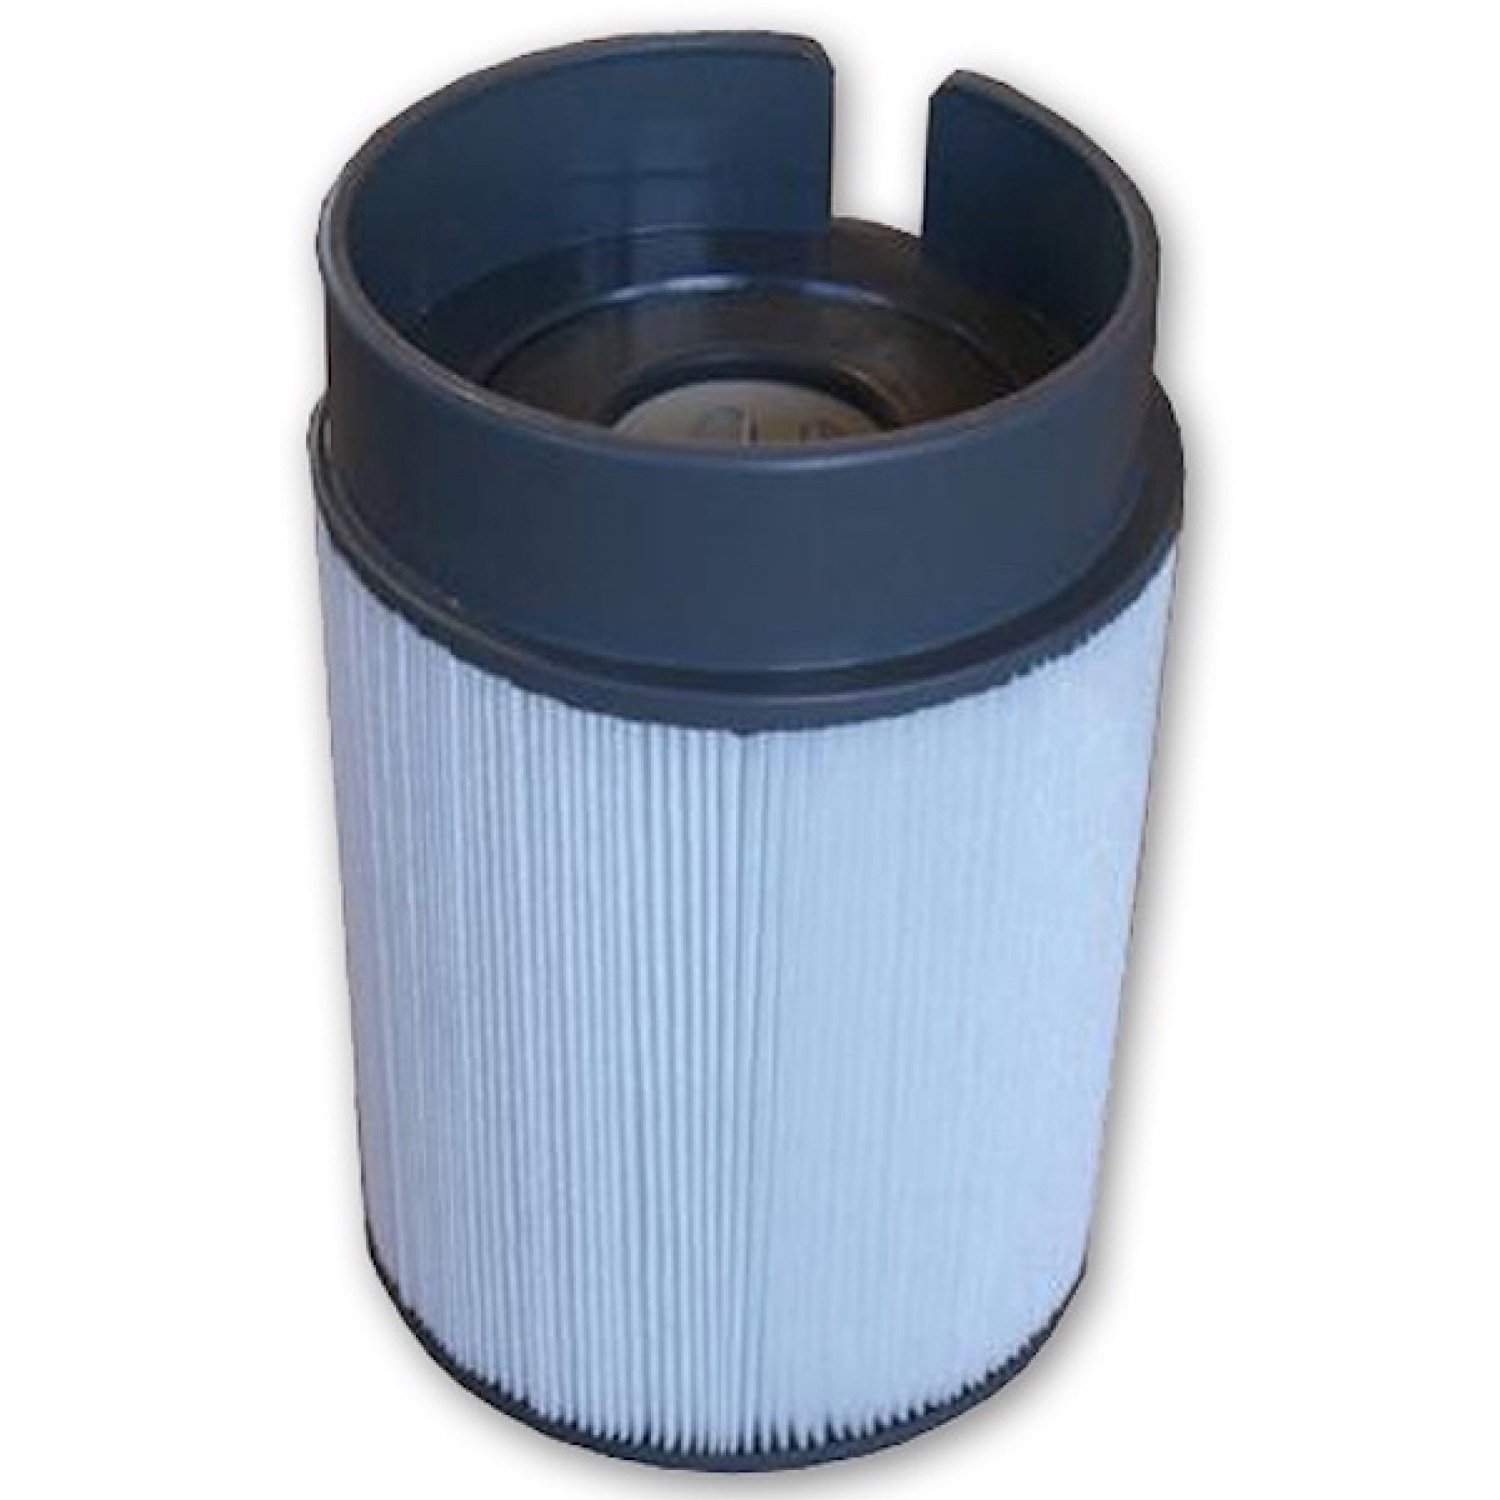 Darlly Softub Replacement Filter - Snap On 2009 Filters